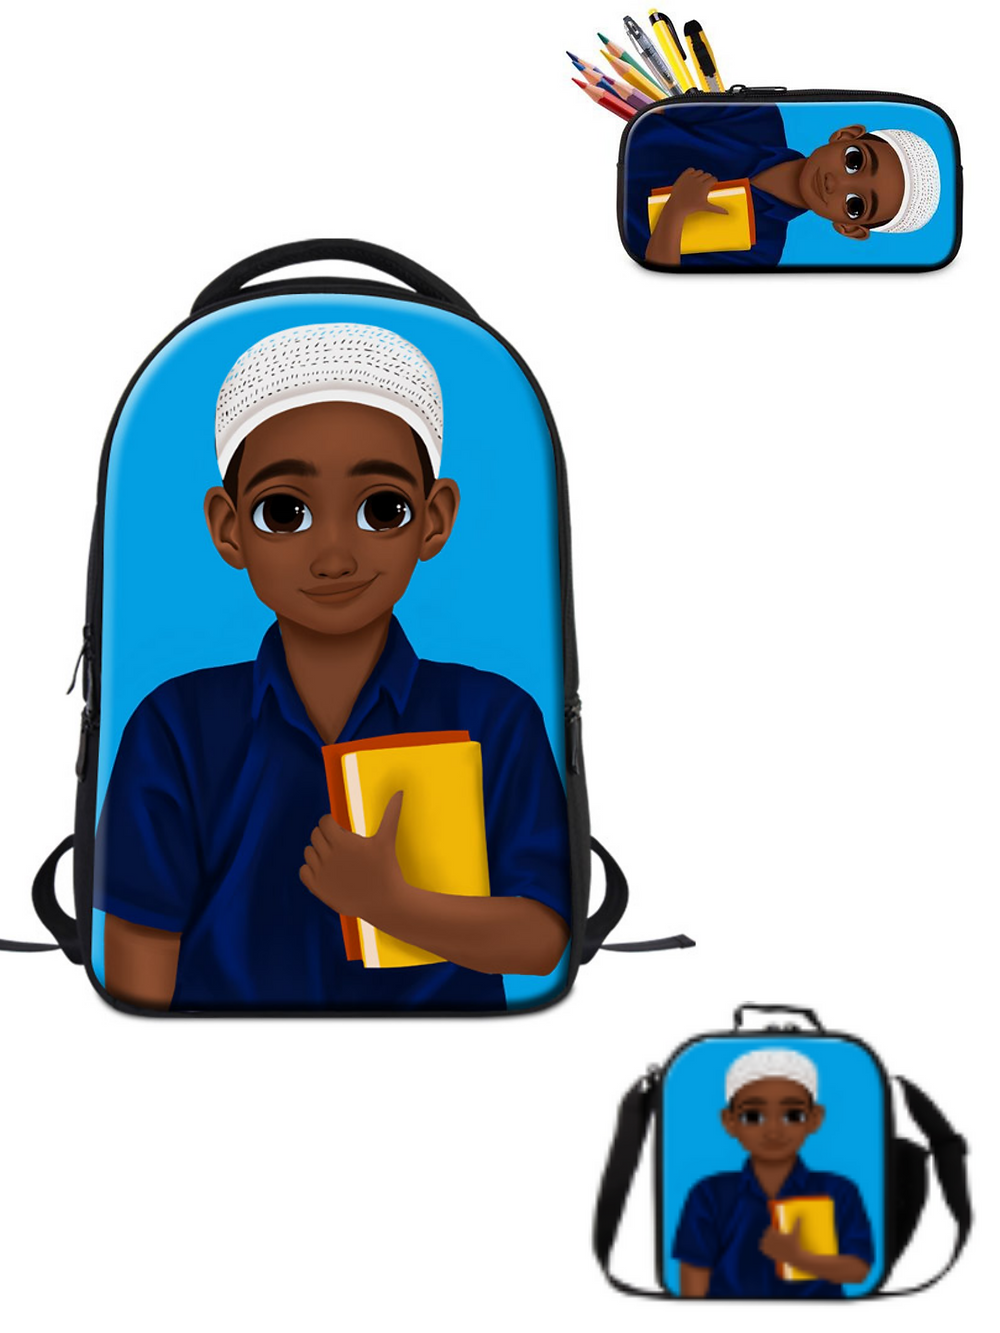 The Black Hijabi, Black-owned school supplies, t-shirts, and more for Muslims